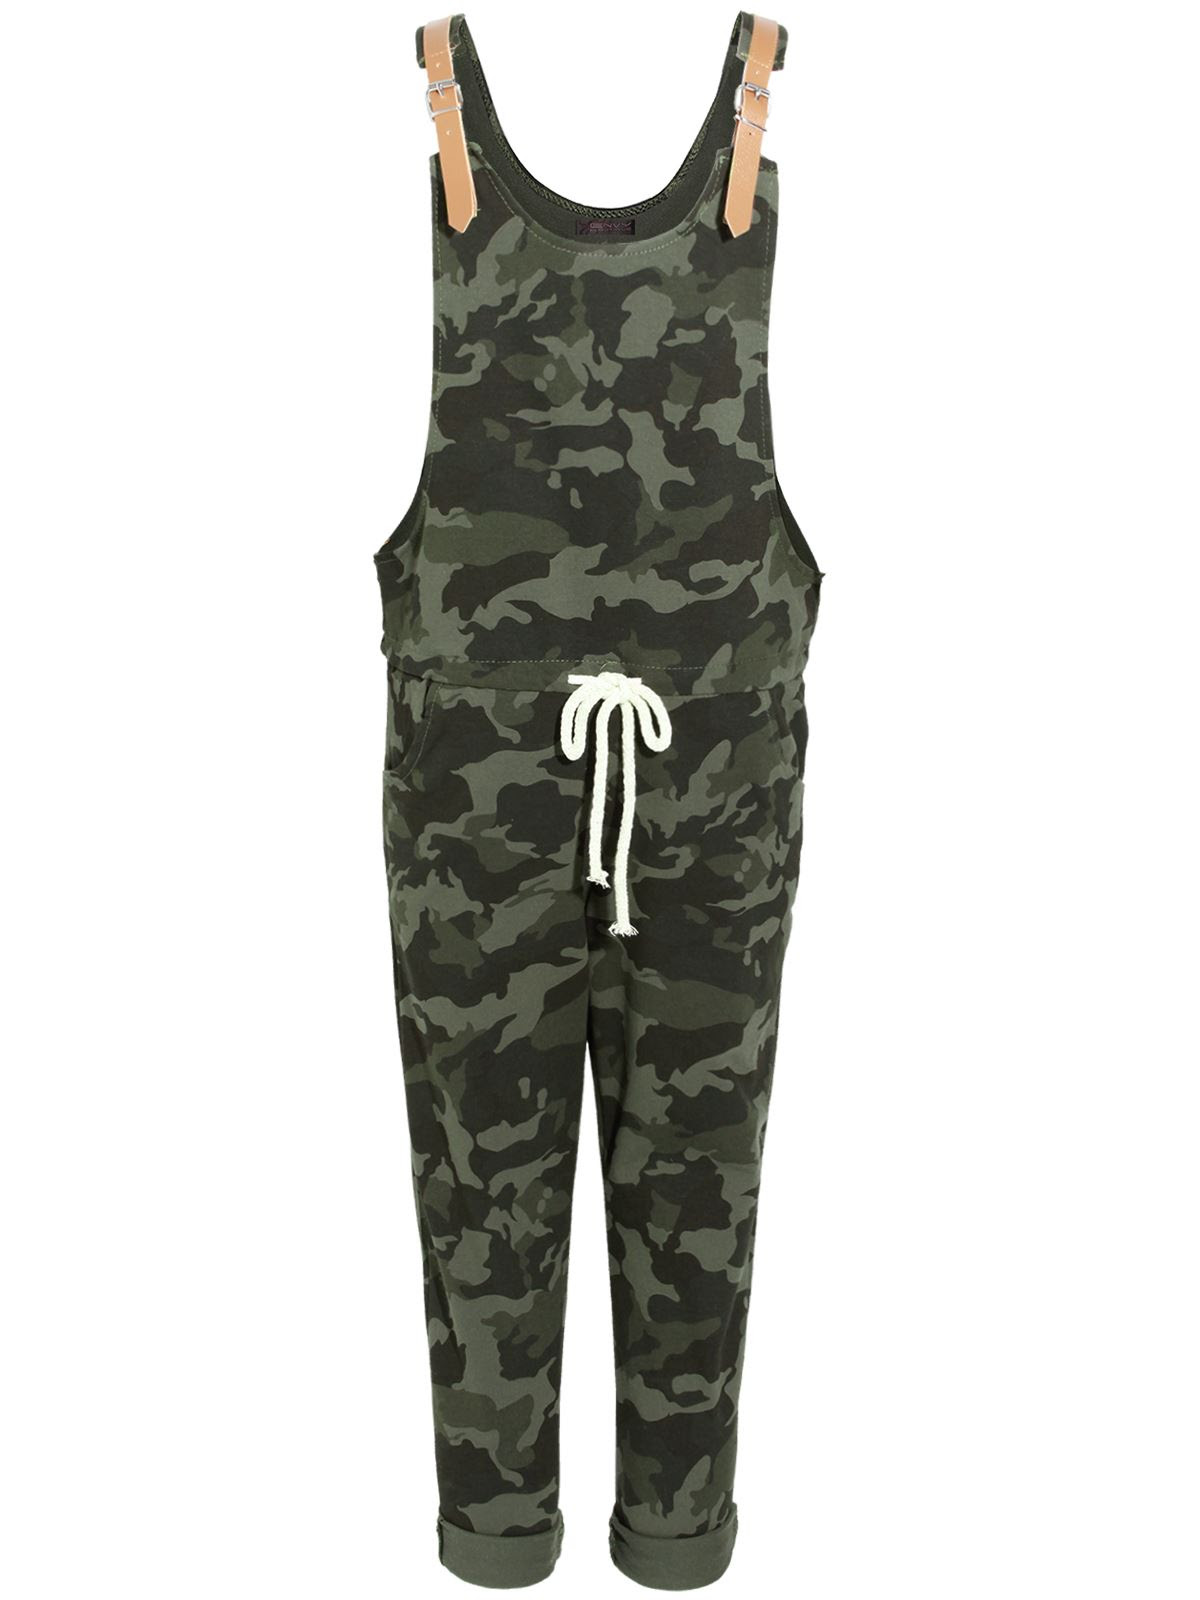 ladies womens dungaree camo camouflage jumpsuit 34 pants